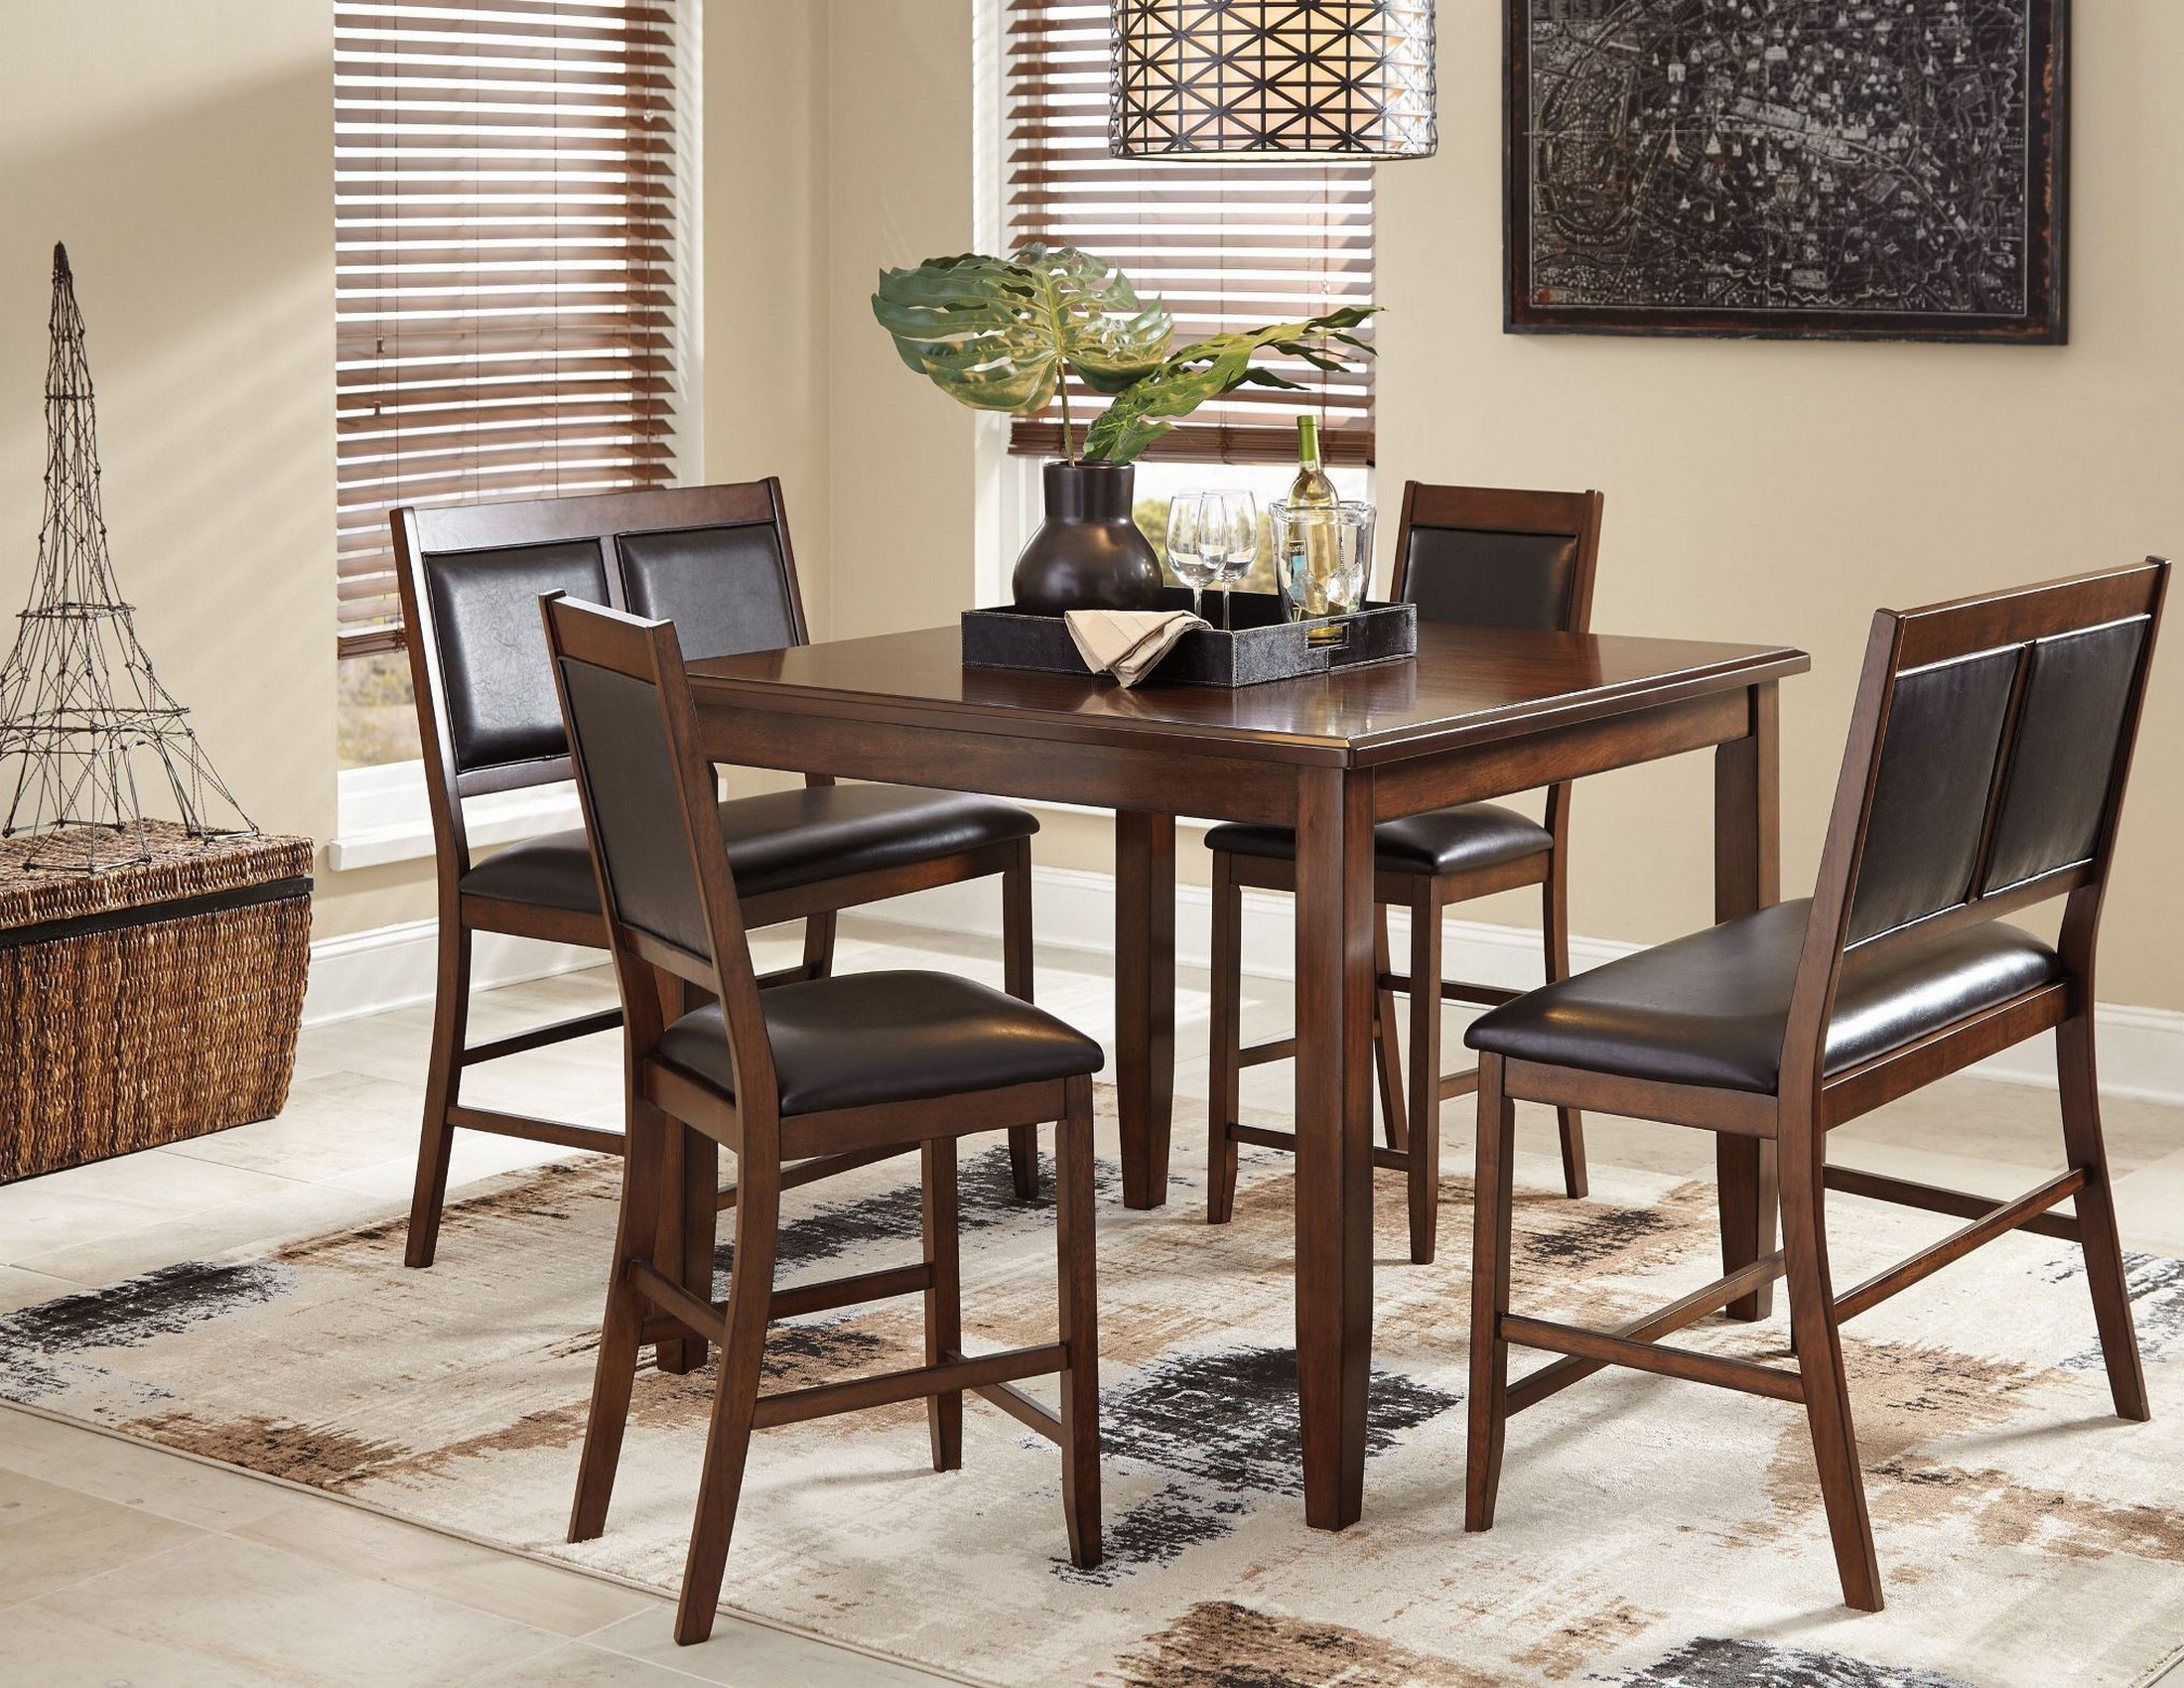 Meredy brown 5 piece counter height dining room set from for Brown dining room set